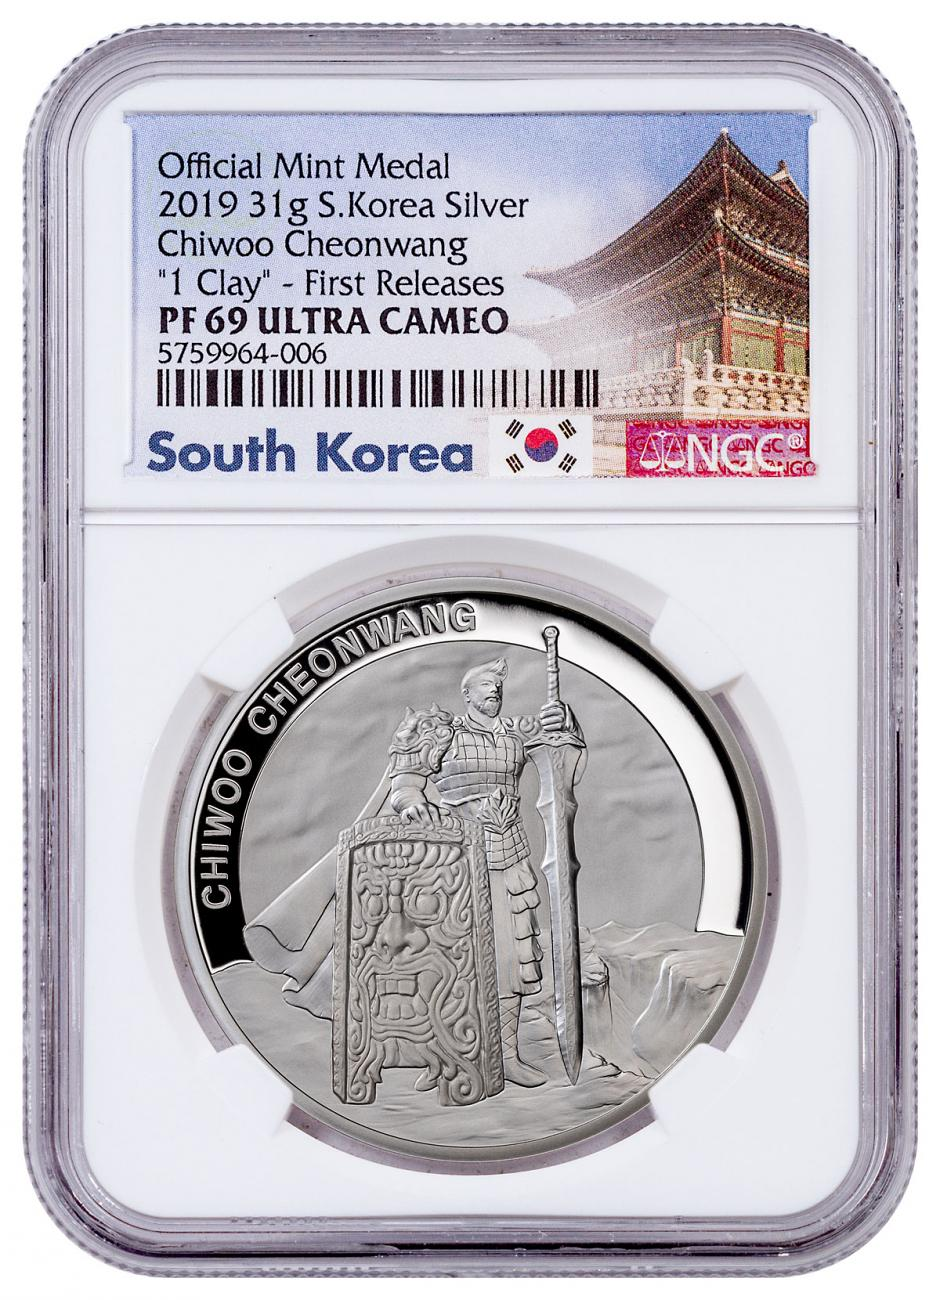 2019 South Korea 1 oz Silver Medal Chiwoo Cheonwang Proof NGC PF69 UC FR Exclusive South Korea Label